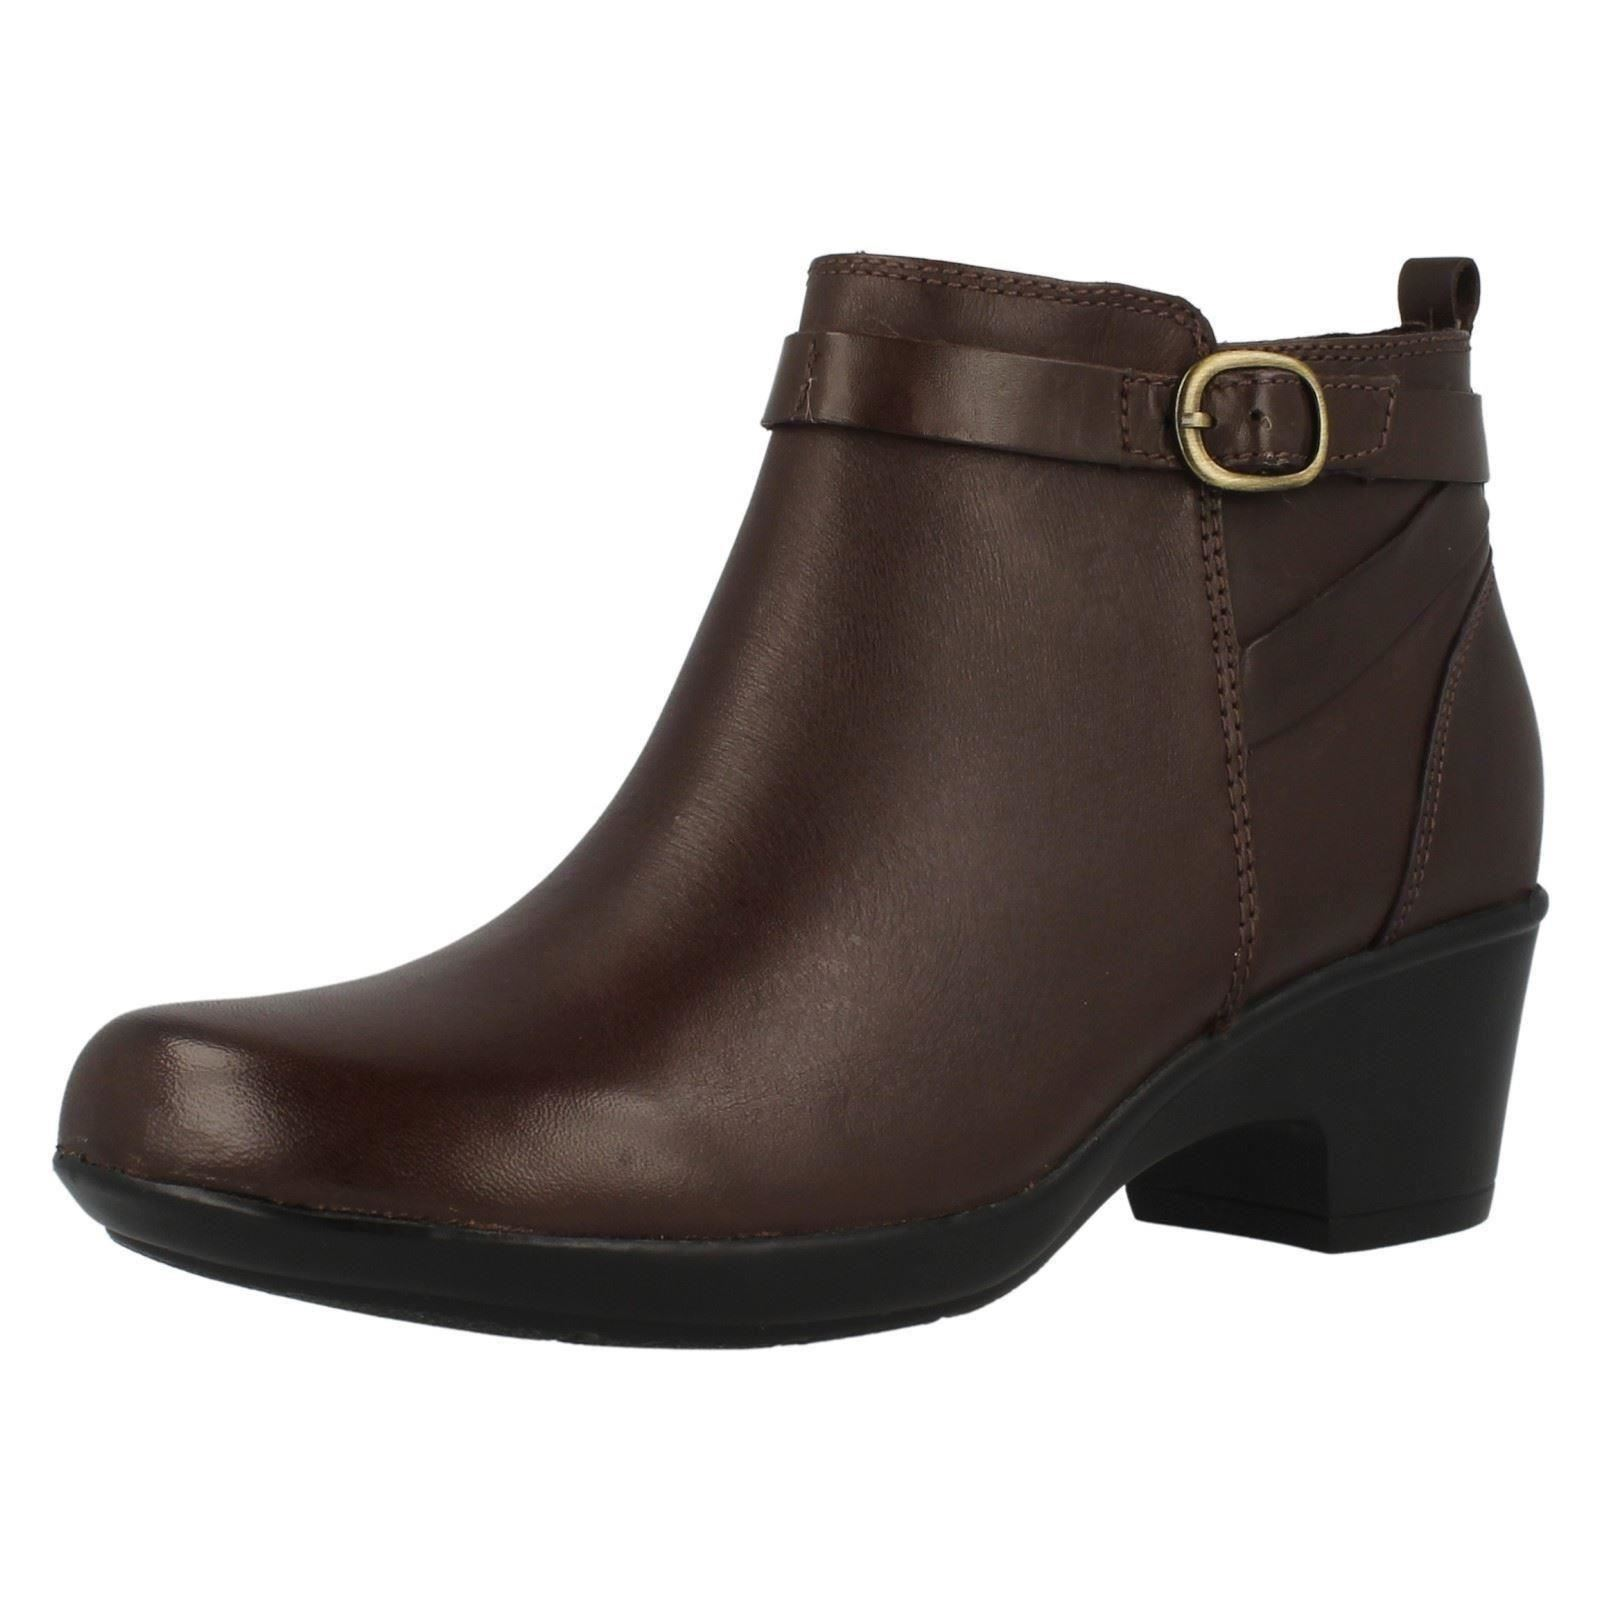 aaa087a75b63c4 Ladies Clarks Zip up Leather Ankle BOOTS Malia Hawthorn Brown Leather 8 UK  E. About this product. Picture 1 of 9  Picture 2 of 9 ...